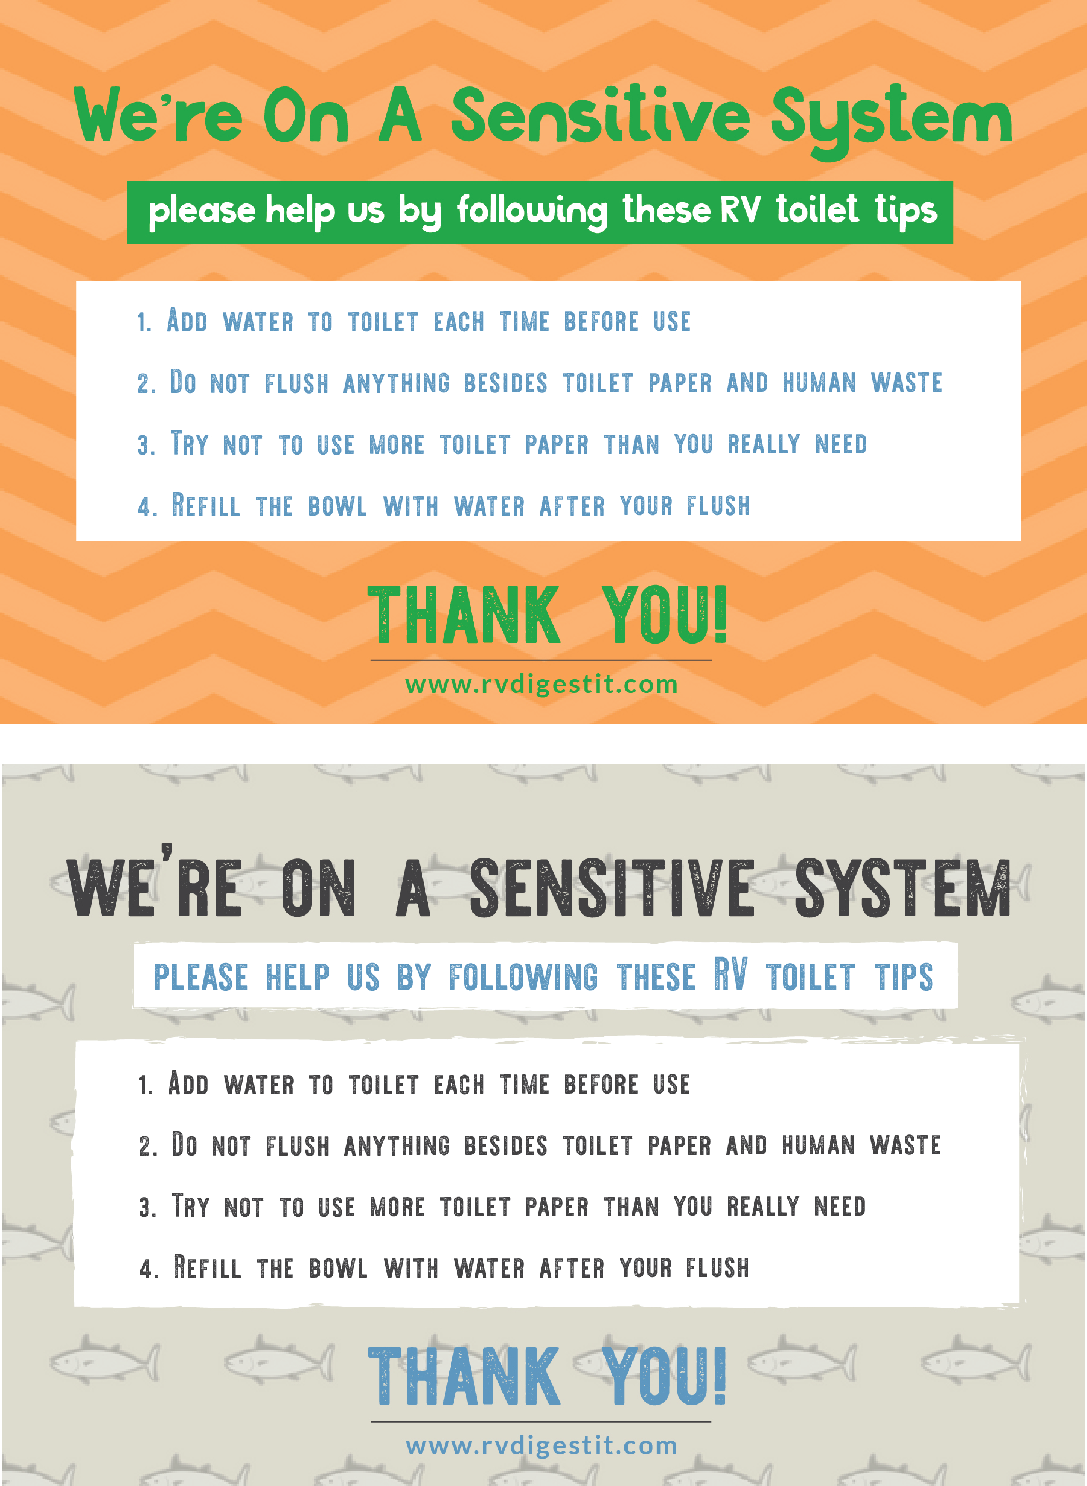 We are on a sensitive system bathroom signs, asking guests to follow tips while using your RV Toilet